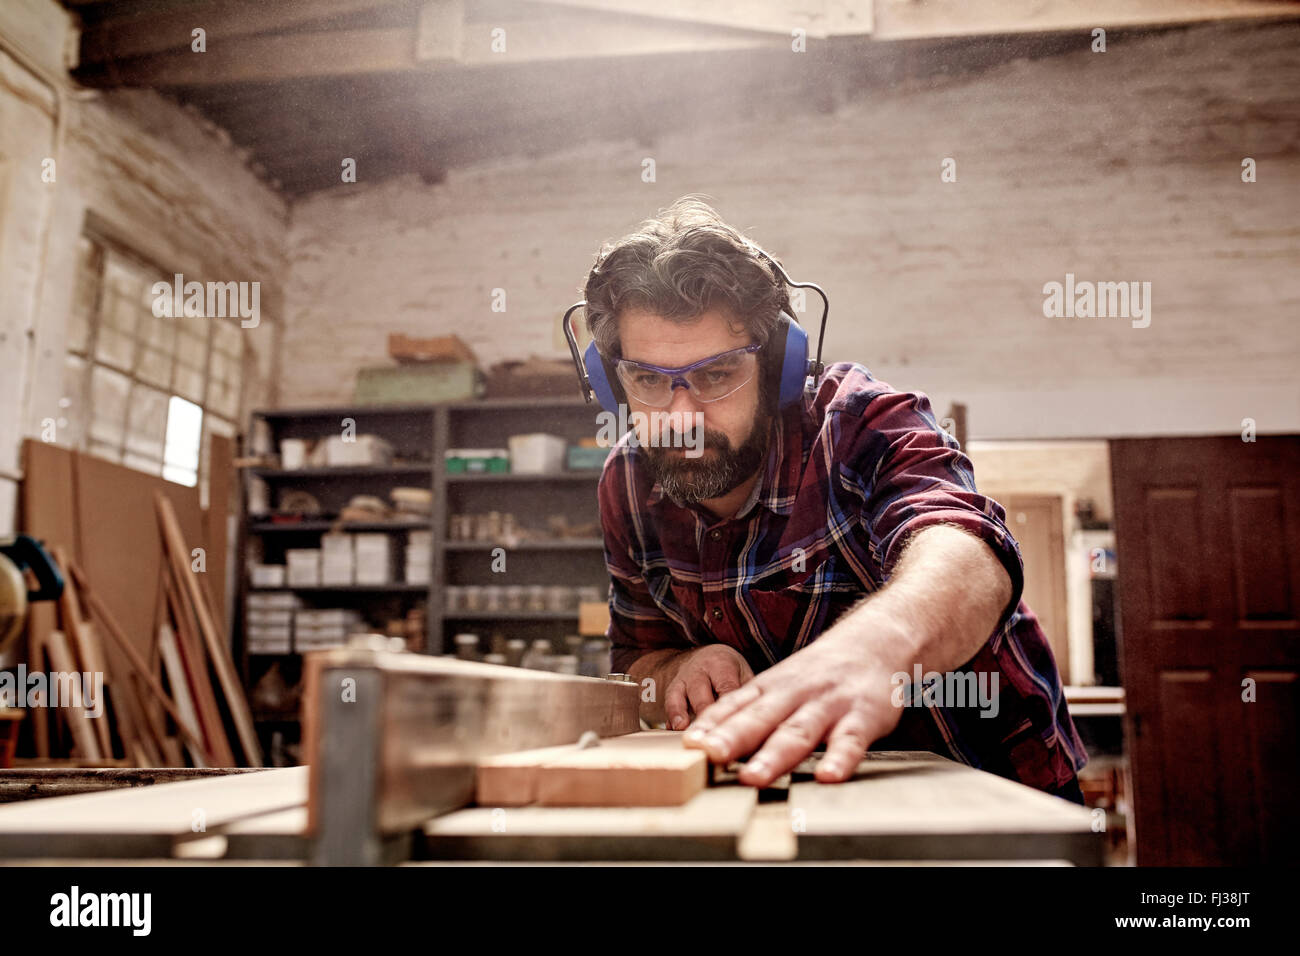 Carpentry business owner cutting a plank of wood in workshop - Stock Image